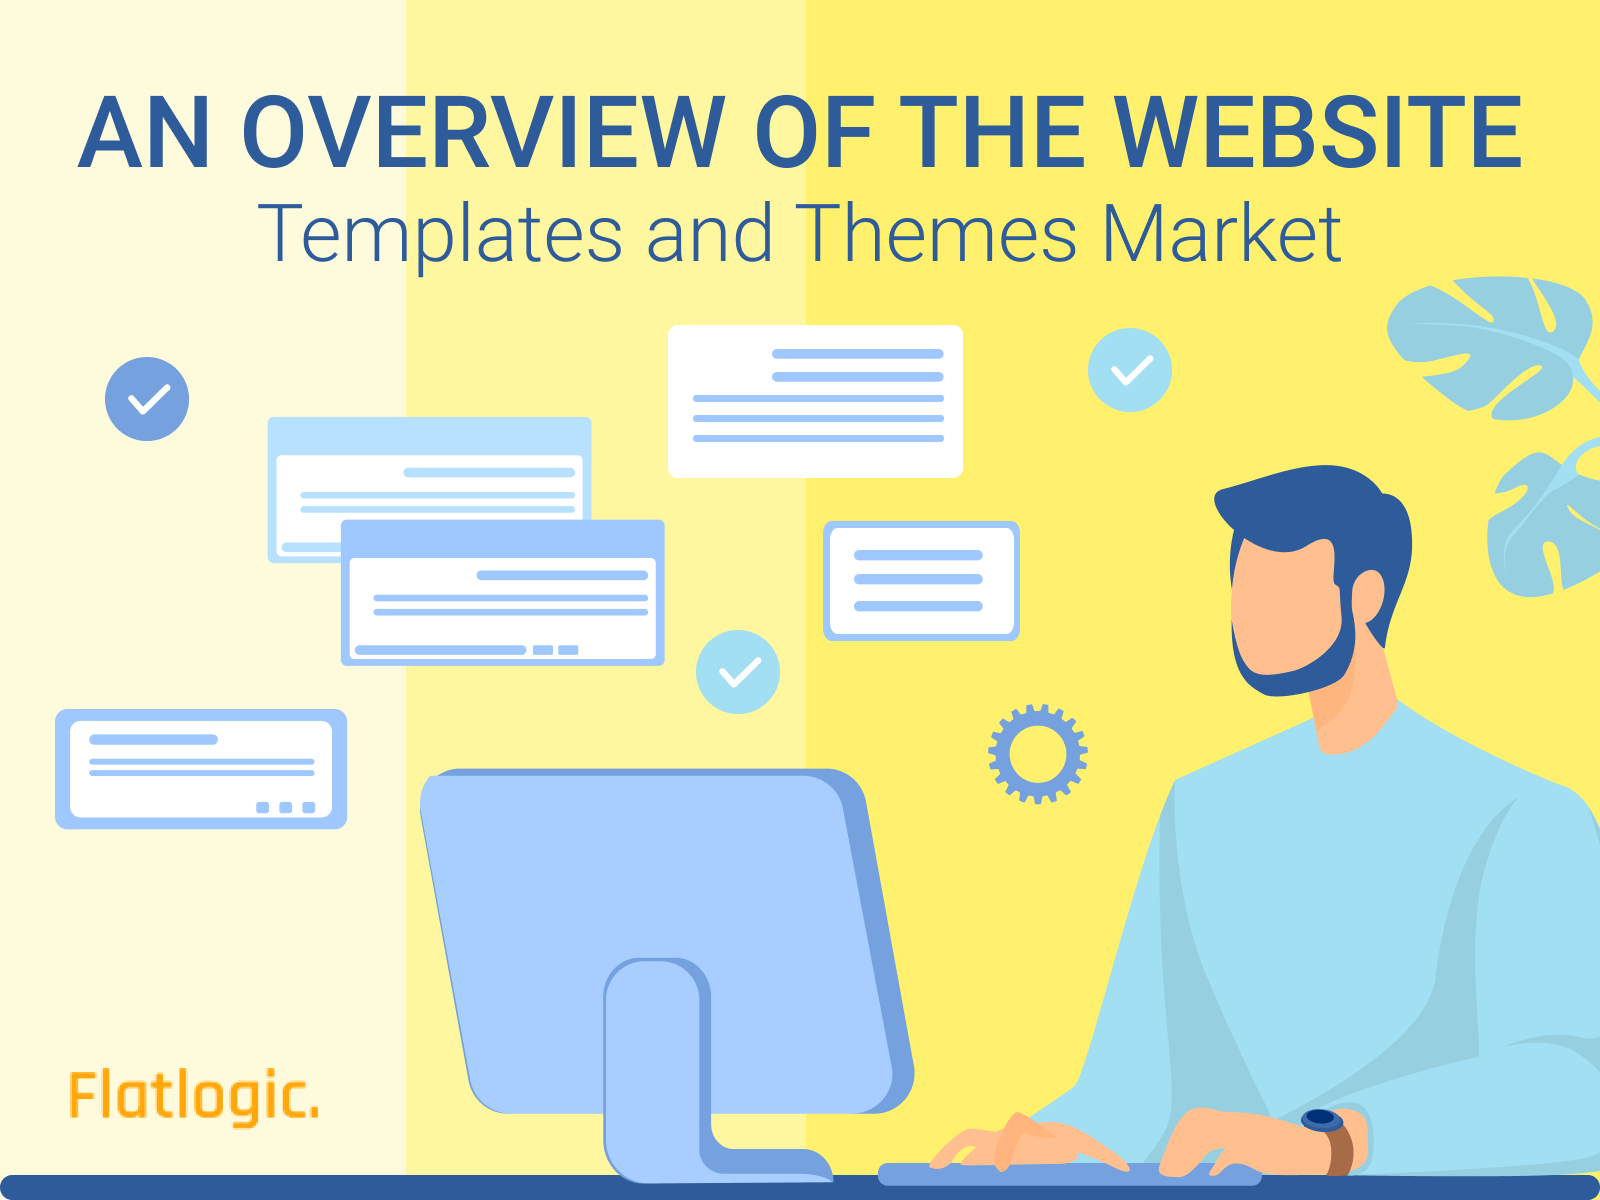 An Overview of the Website Templates and Themes Market - Flatlogic Blog